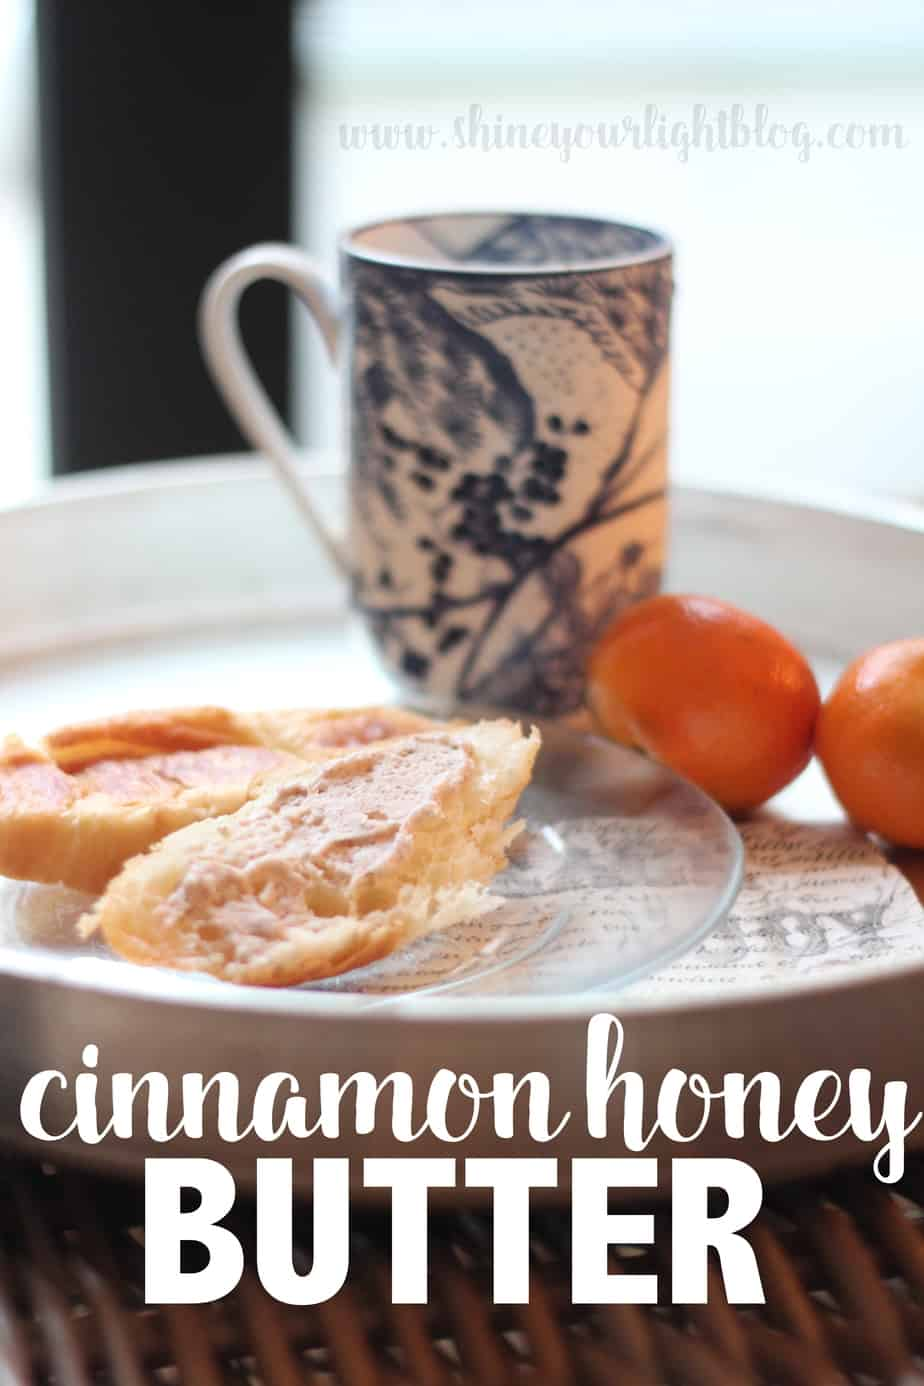 cinnamon-honey-butter-to-make-and-share-3456x5184